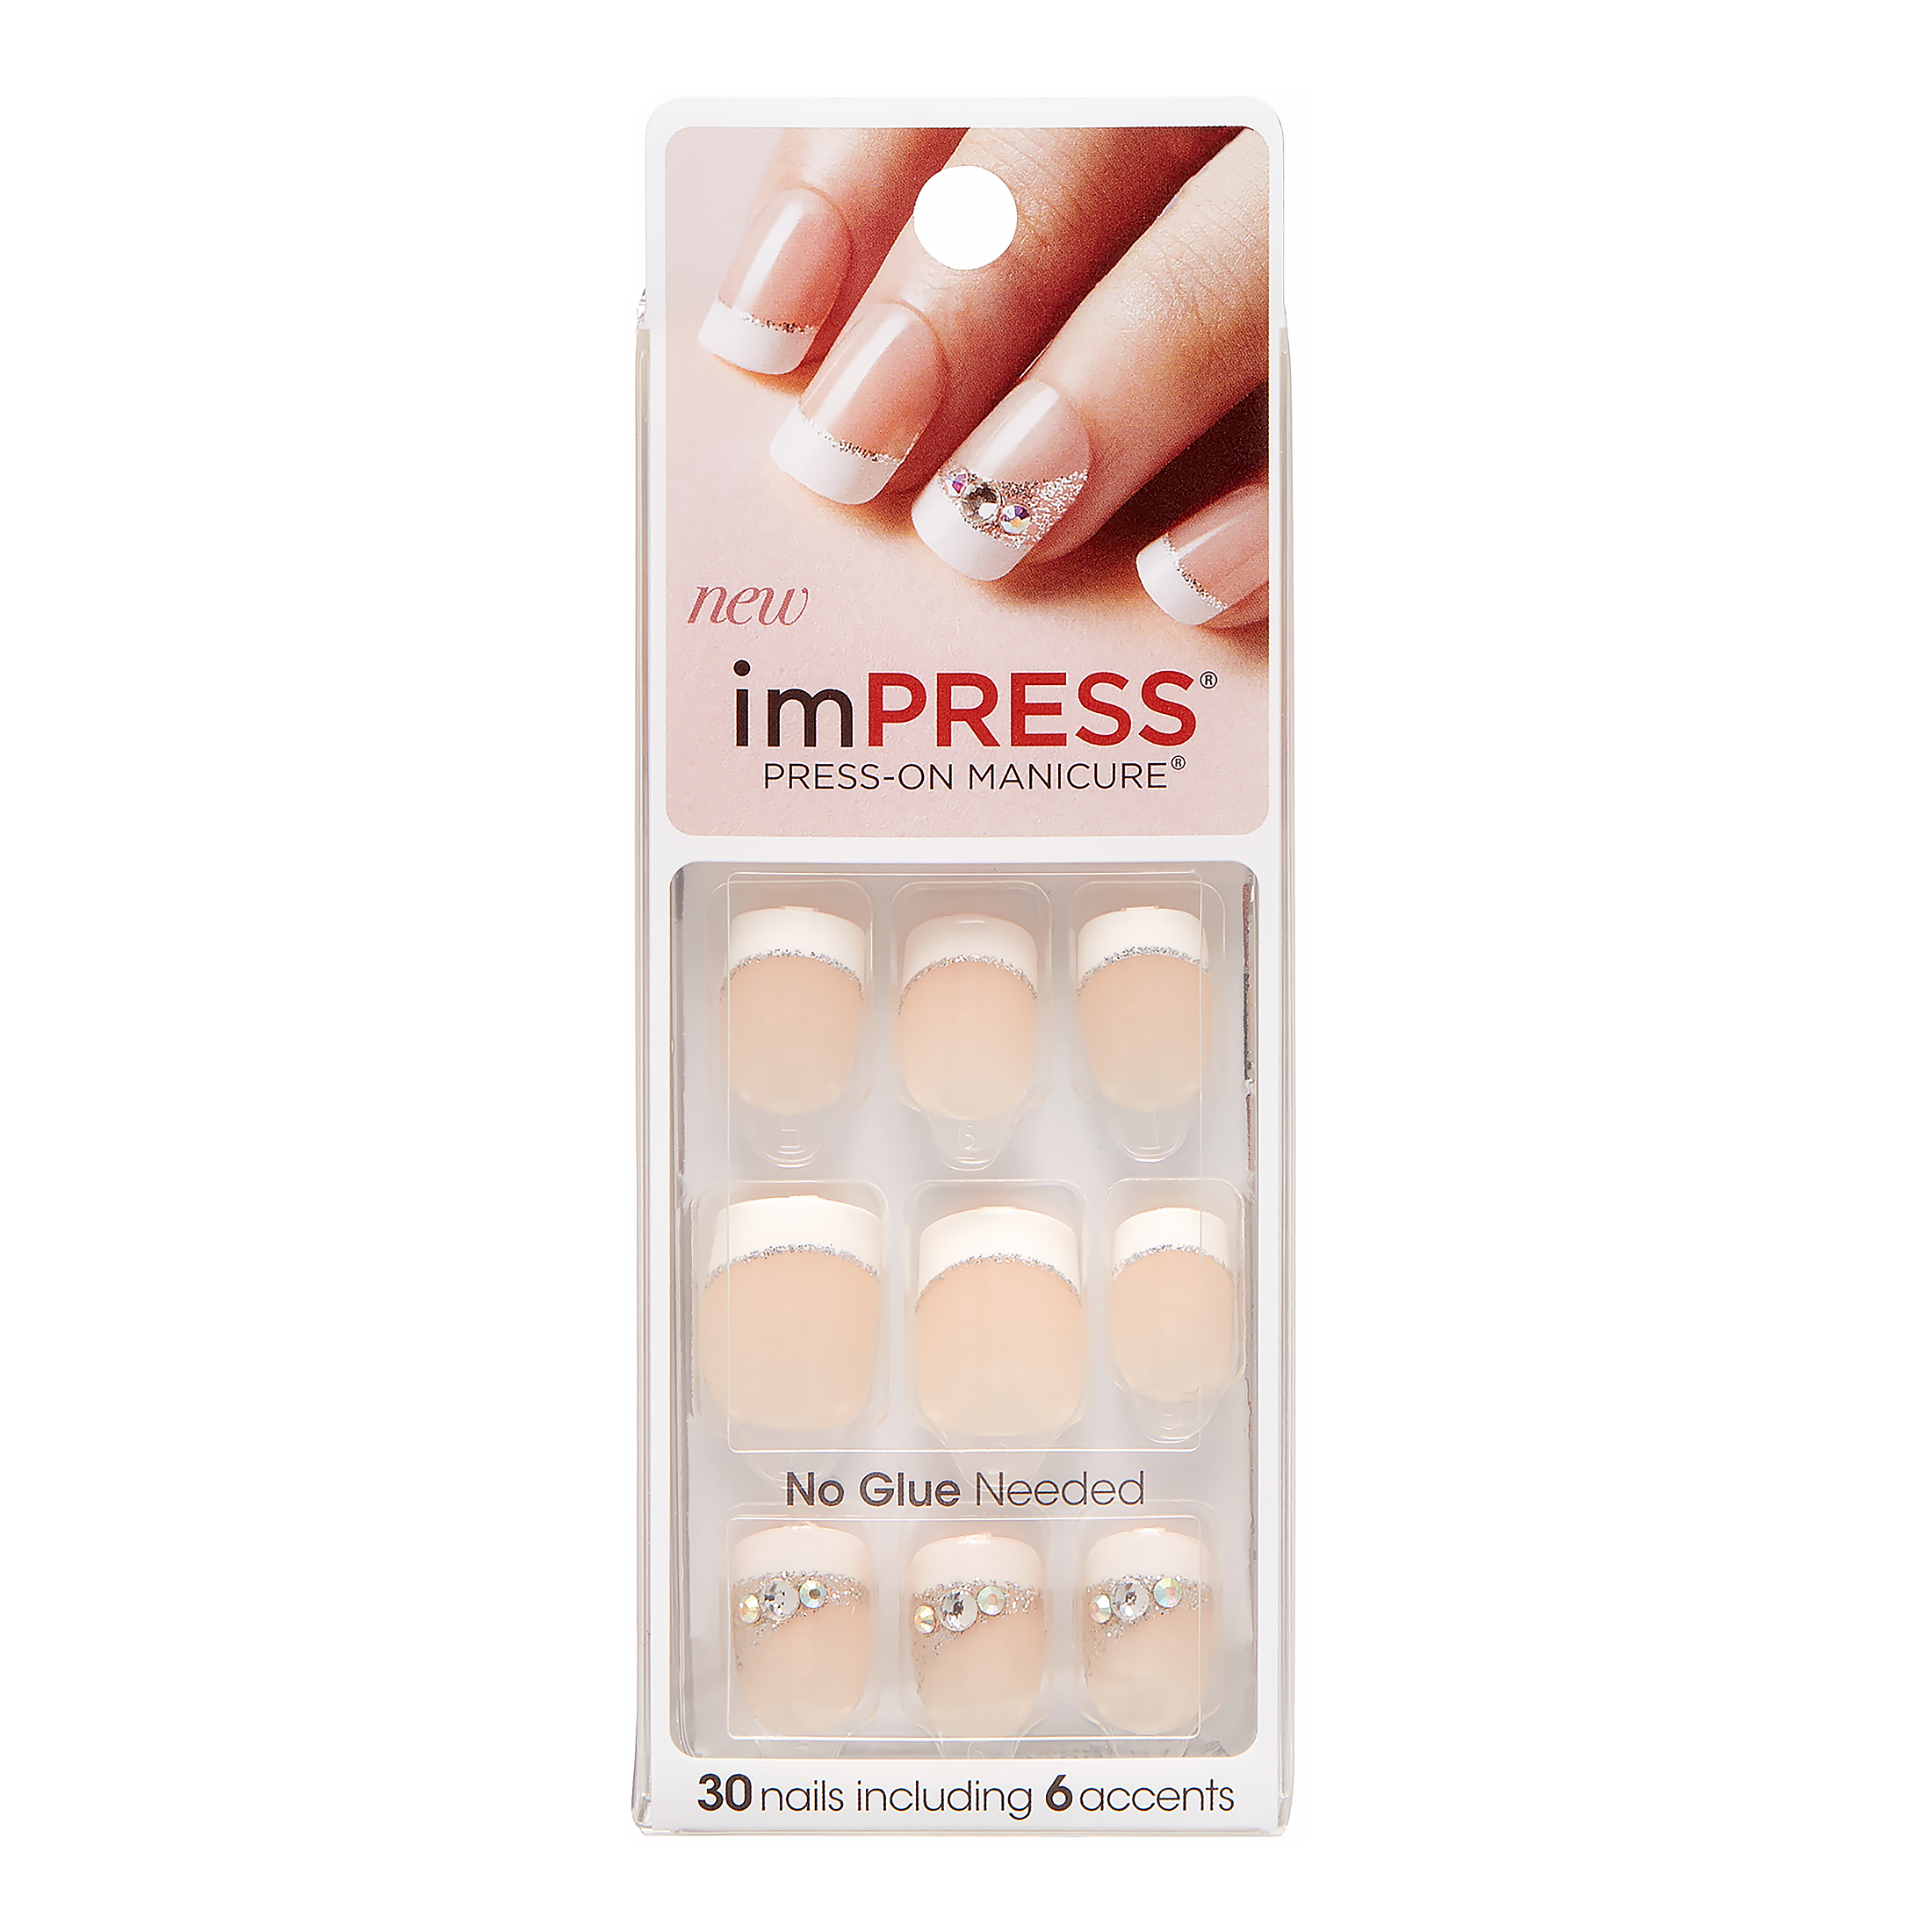 ImPRESS - ImPRESS Press-on Nails Gel Manicure - French Manicure, Queen B